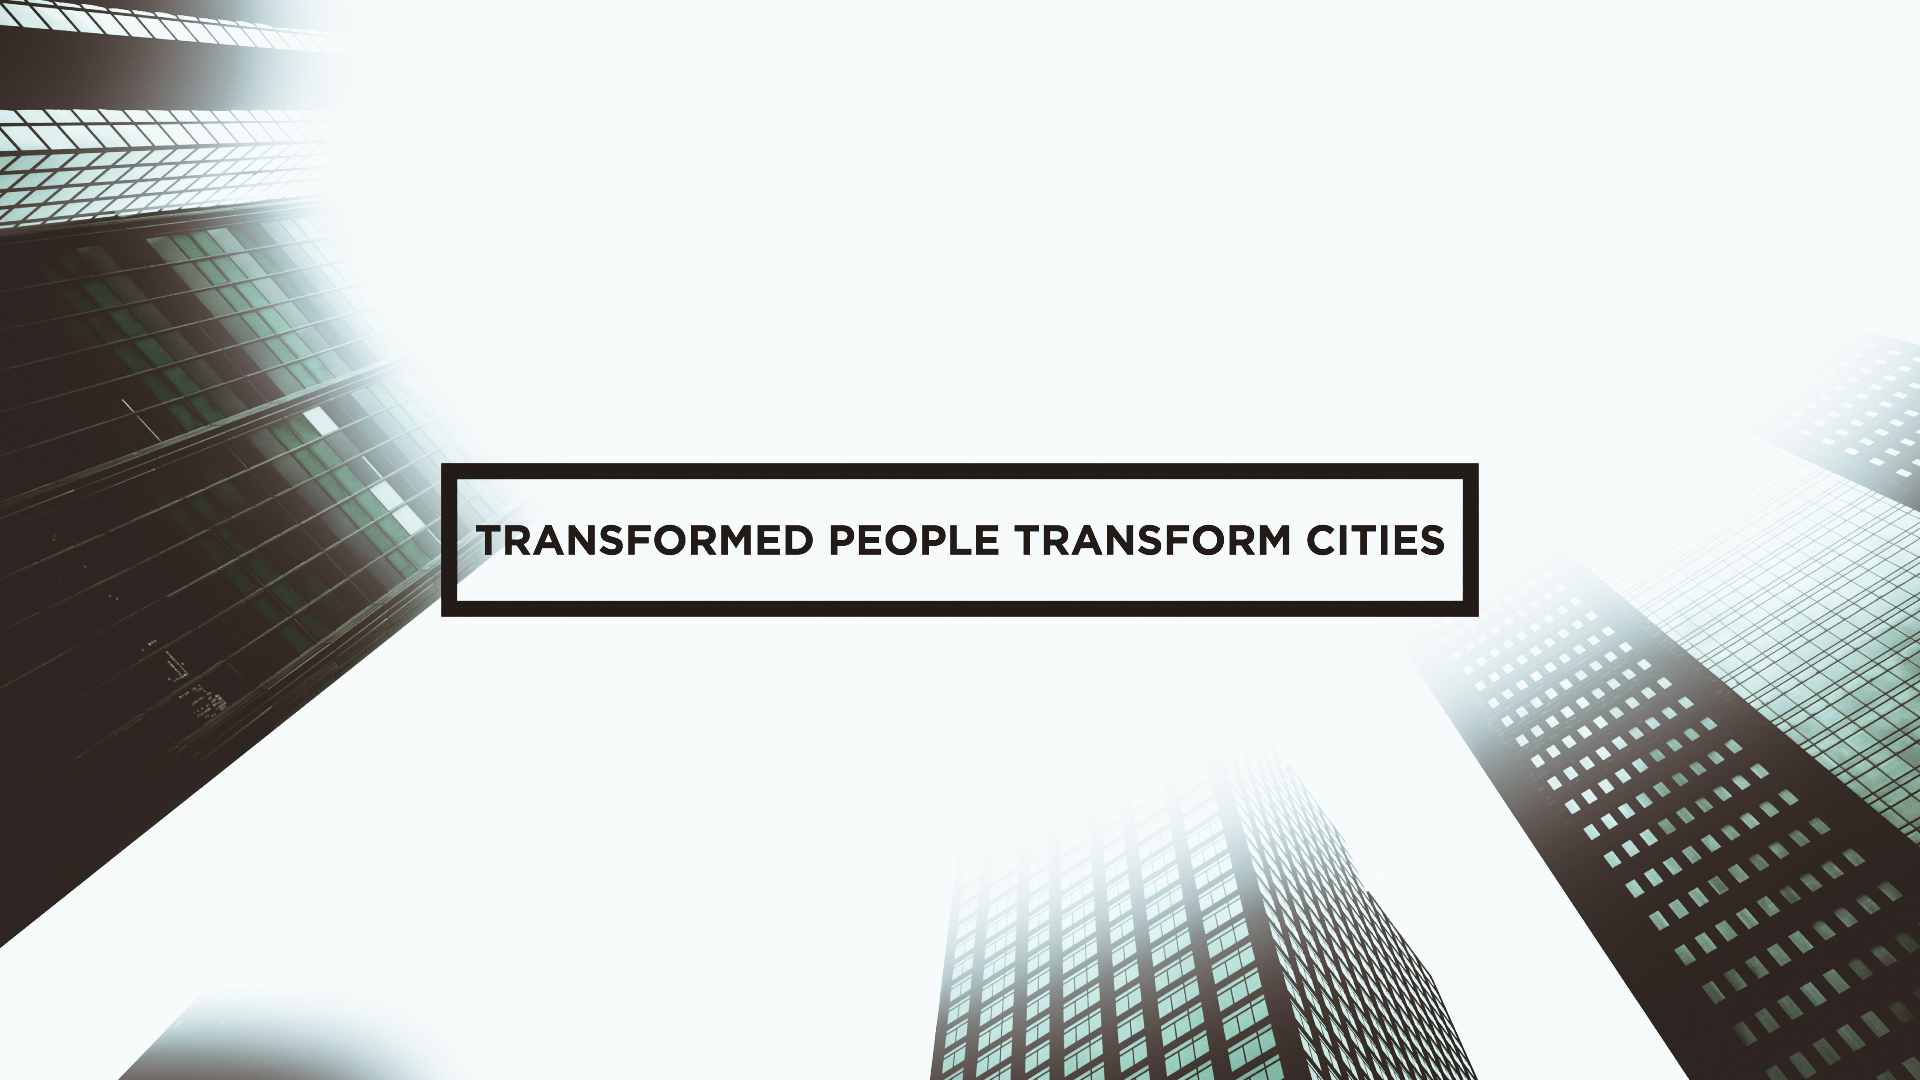 08-TRANSFORMED PEOPLE TRANSFORM CITIES.JPG